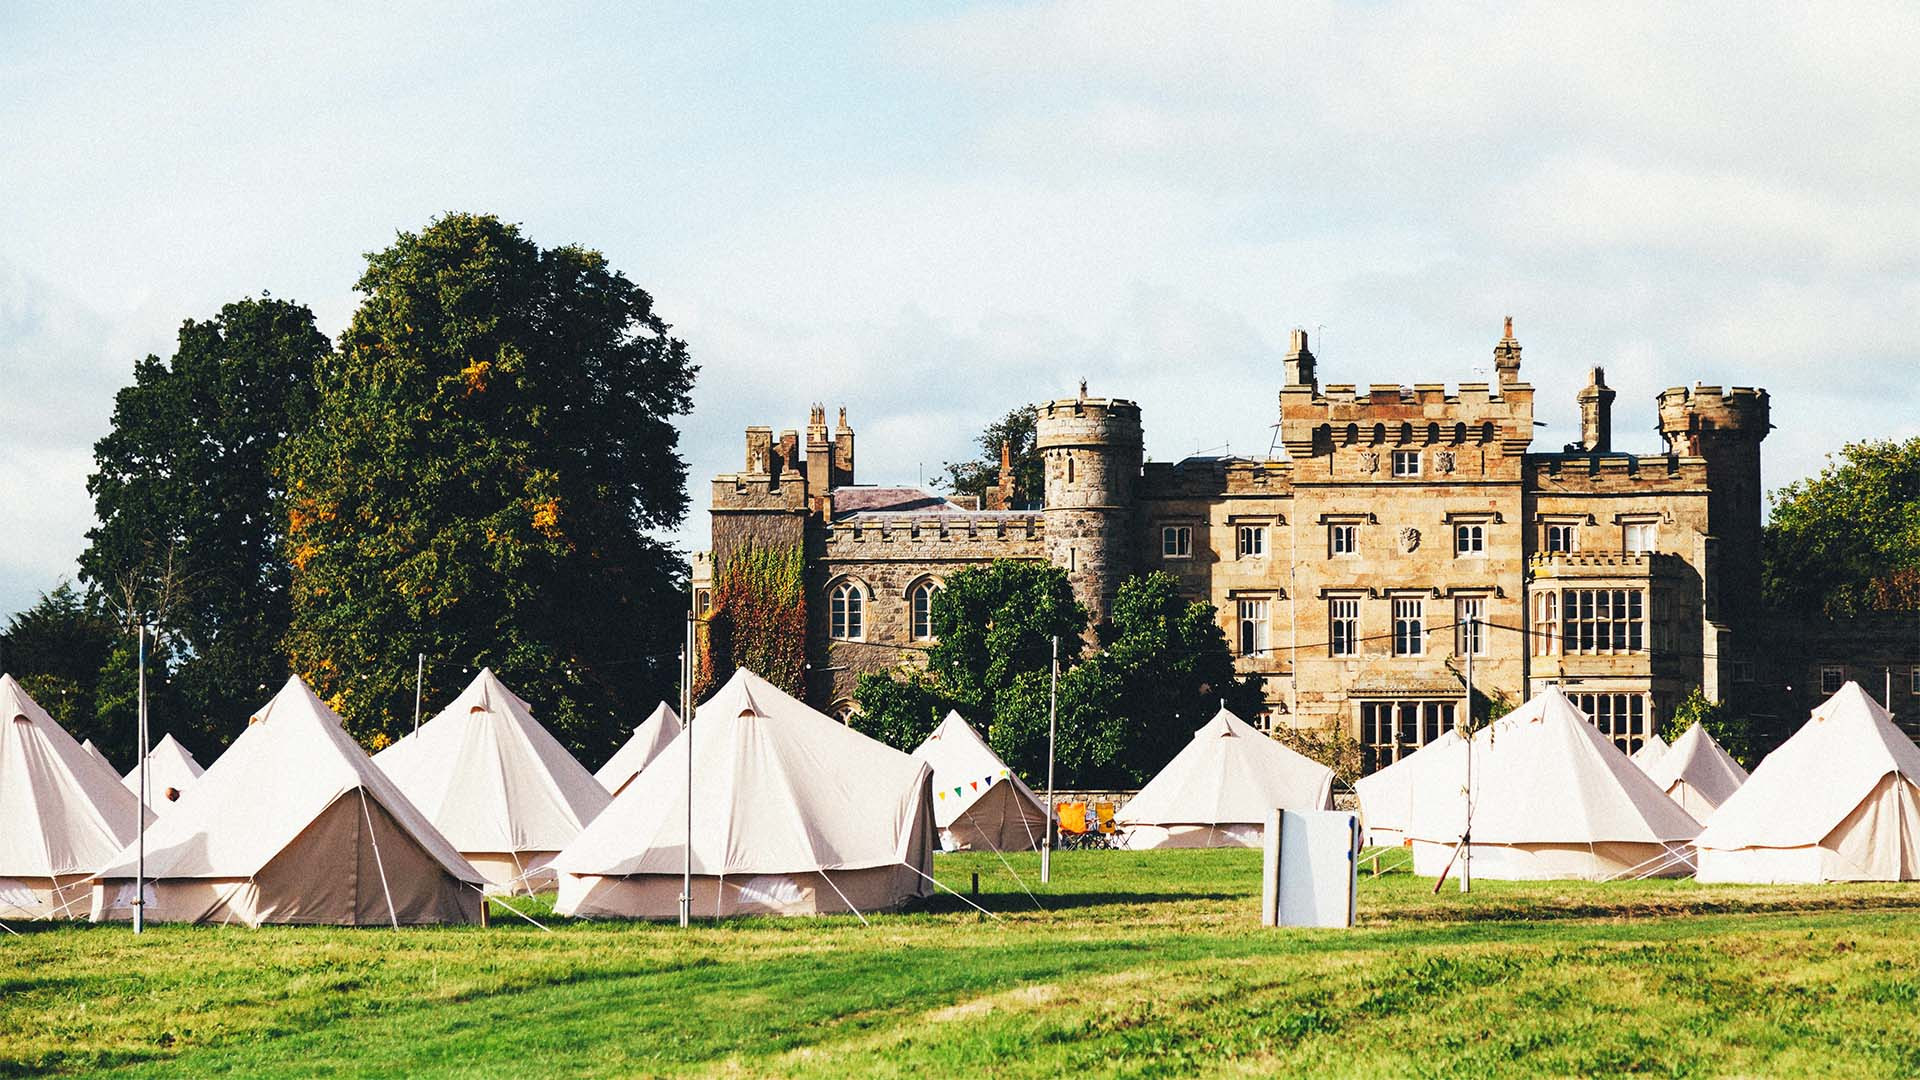 Camping at The Good Life Experience festival in Flintshire, Wales